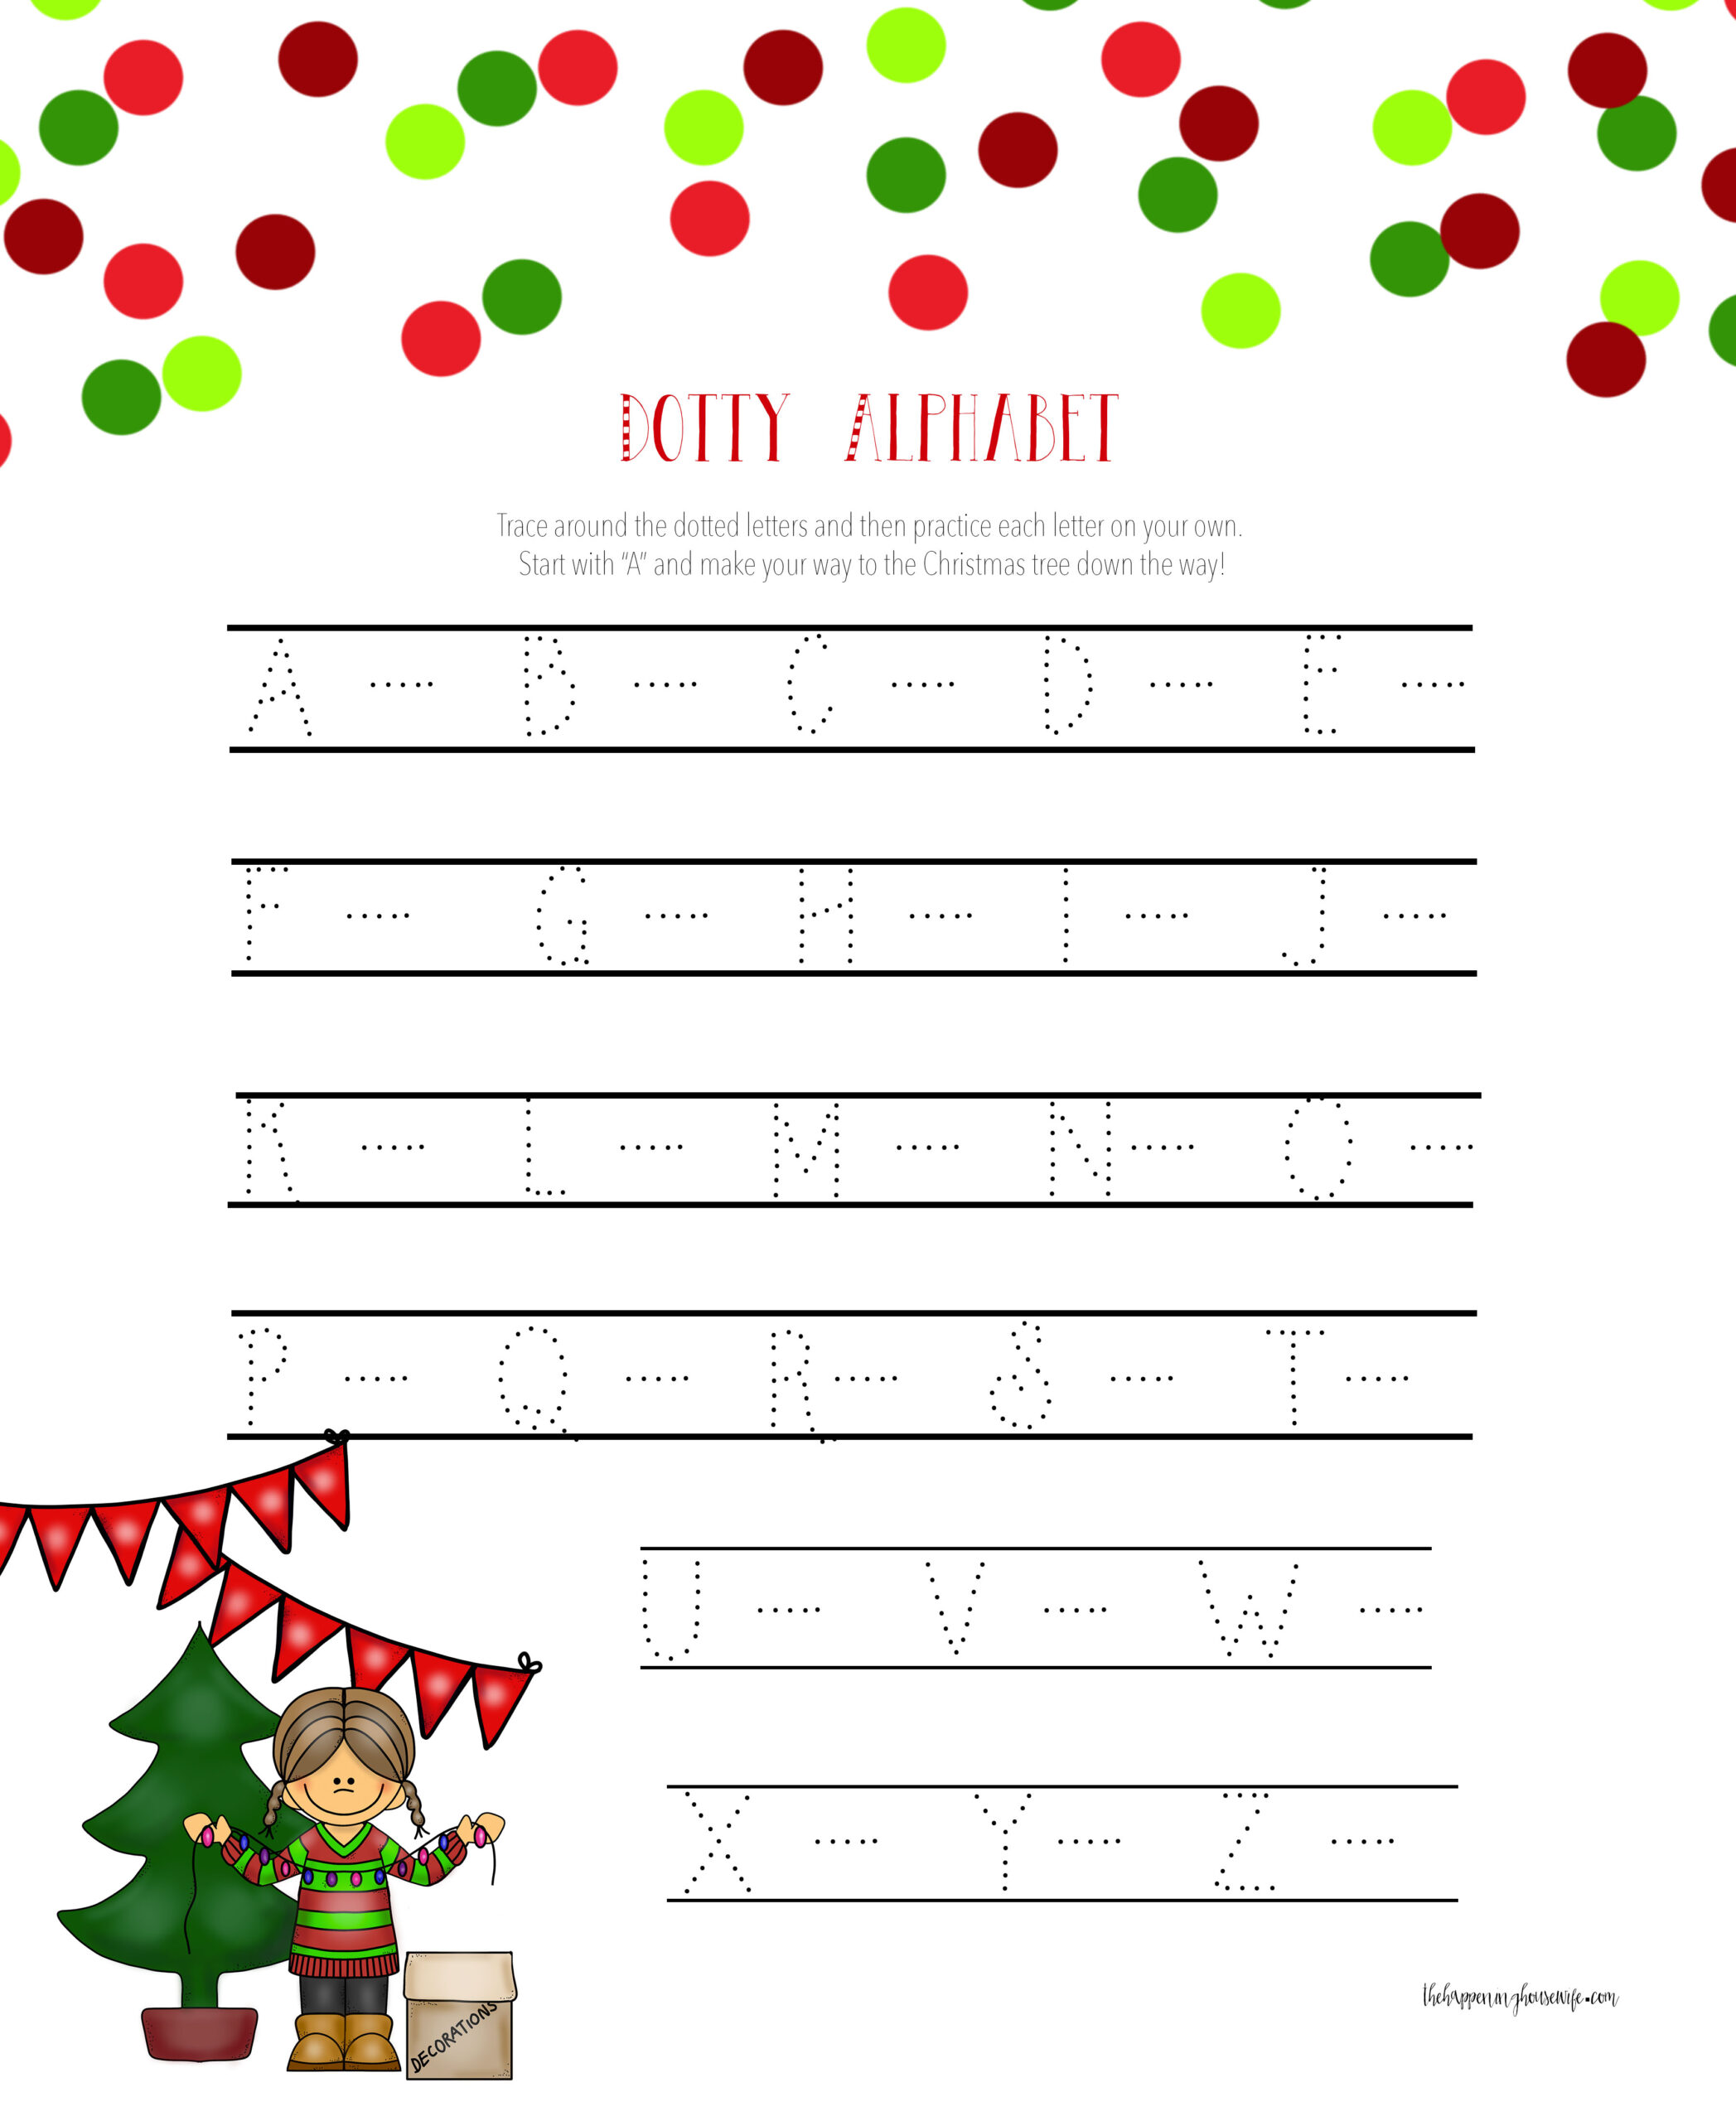 Christmas Dotty Alphabet.jpg